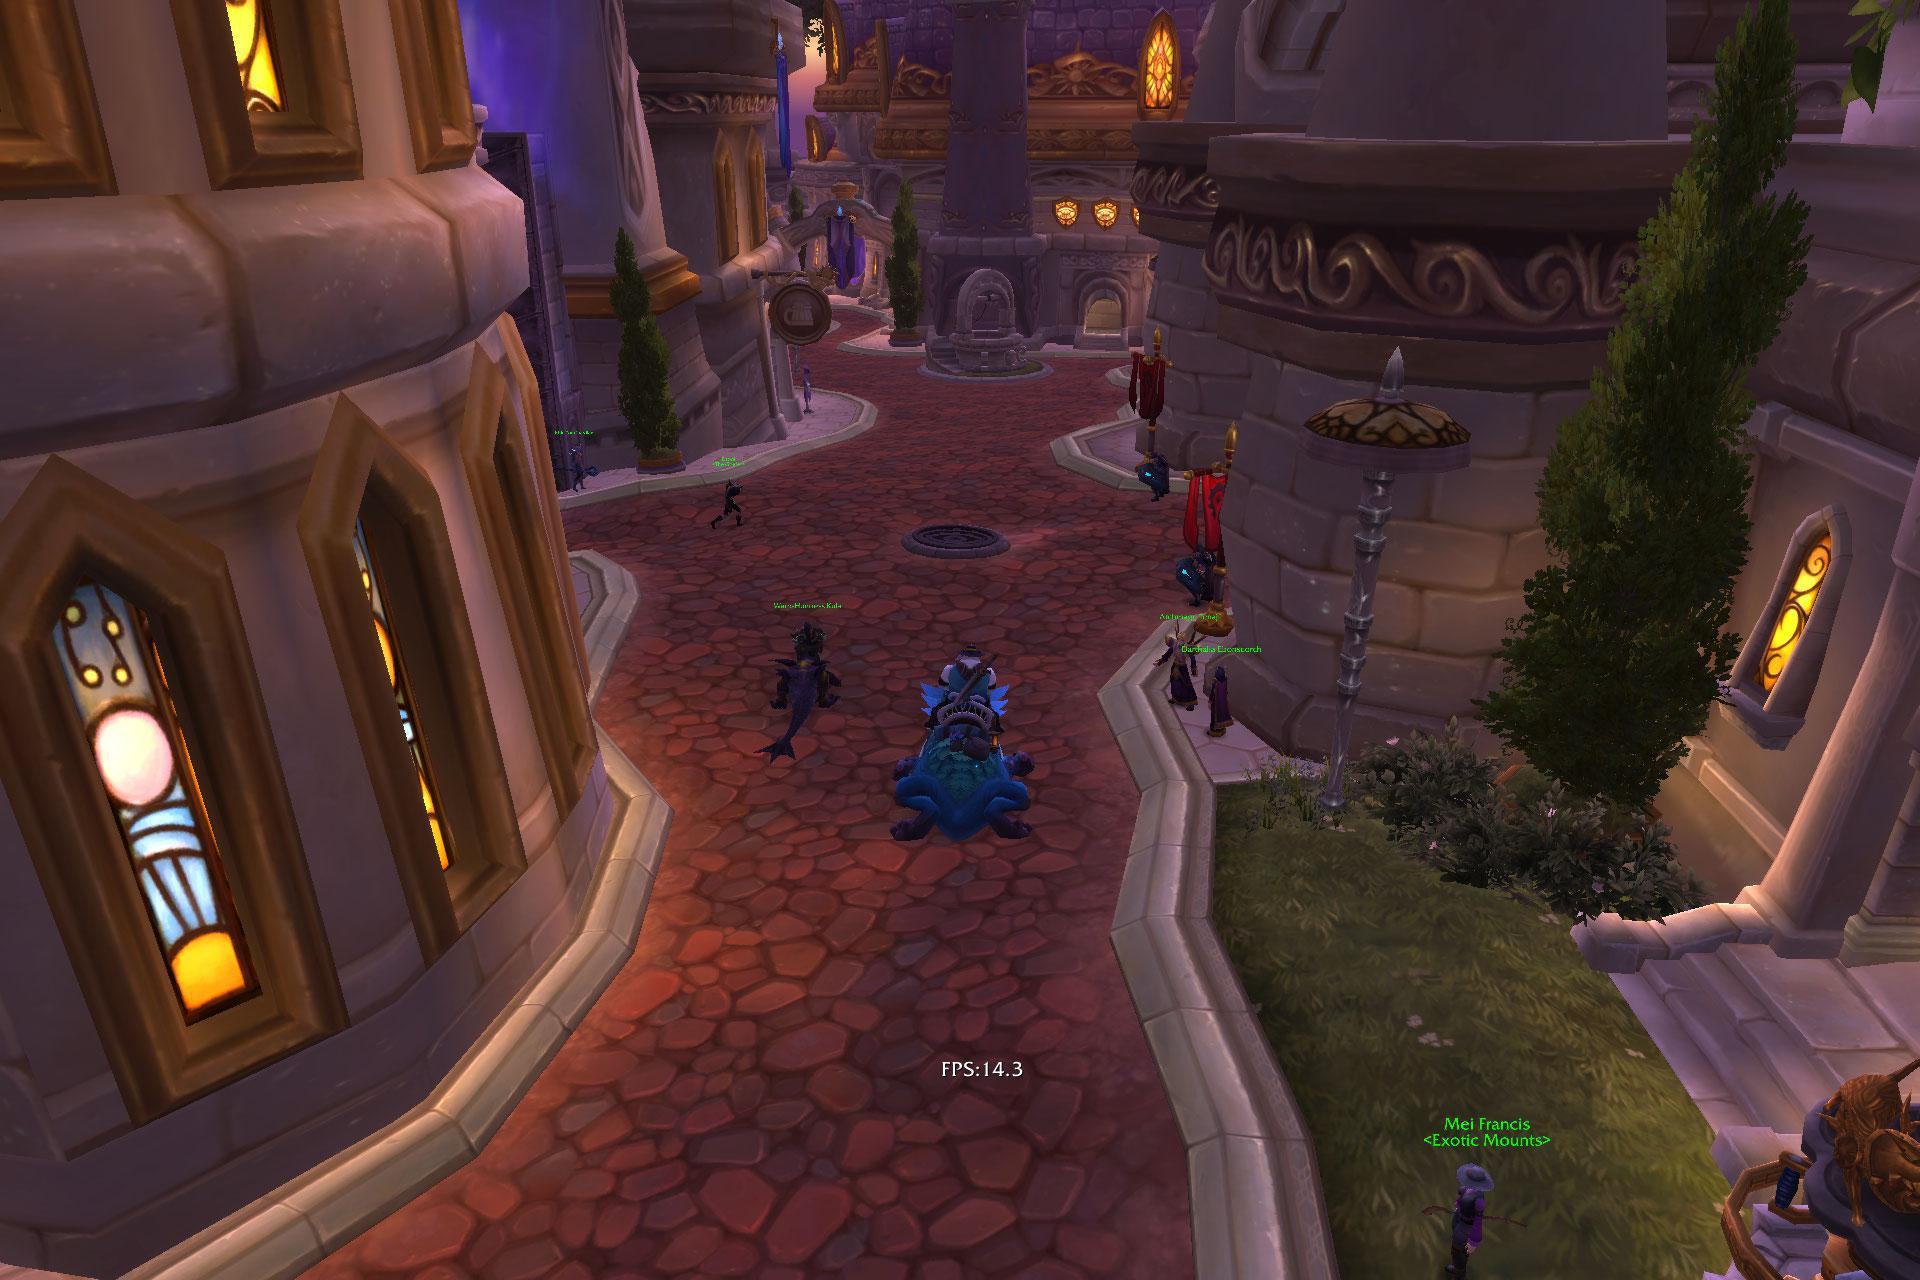 World of Warcraft offers a native AARCH64 client